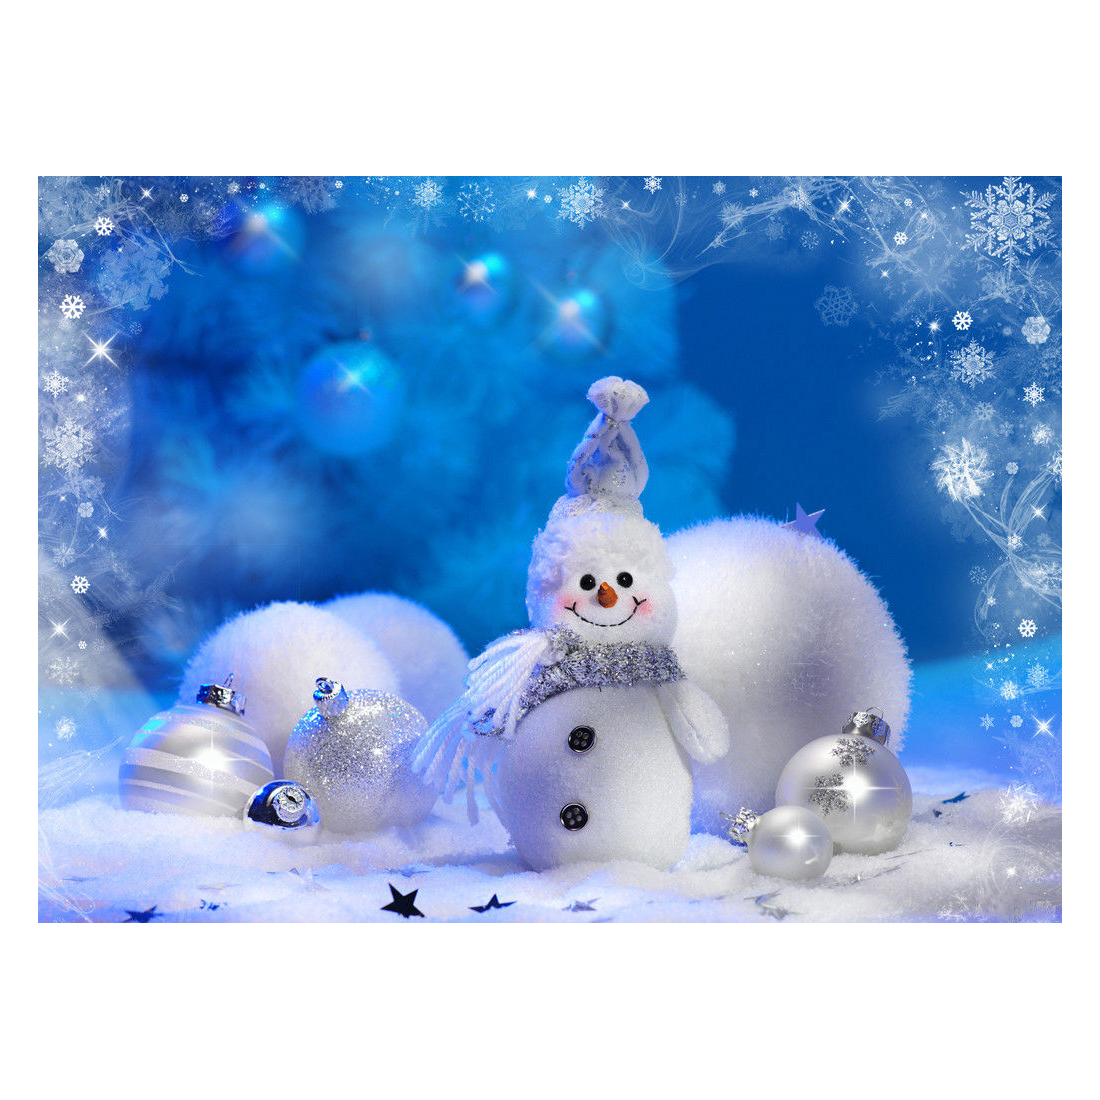 Christmas snowman photography photo prop Studio background Vinyl backdrop 7X5FT christmas background pictures vinyl tree wreath gift window child photocall fairy tale wonderland camera photo studio backdrop